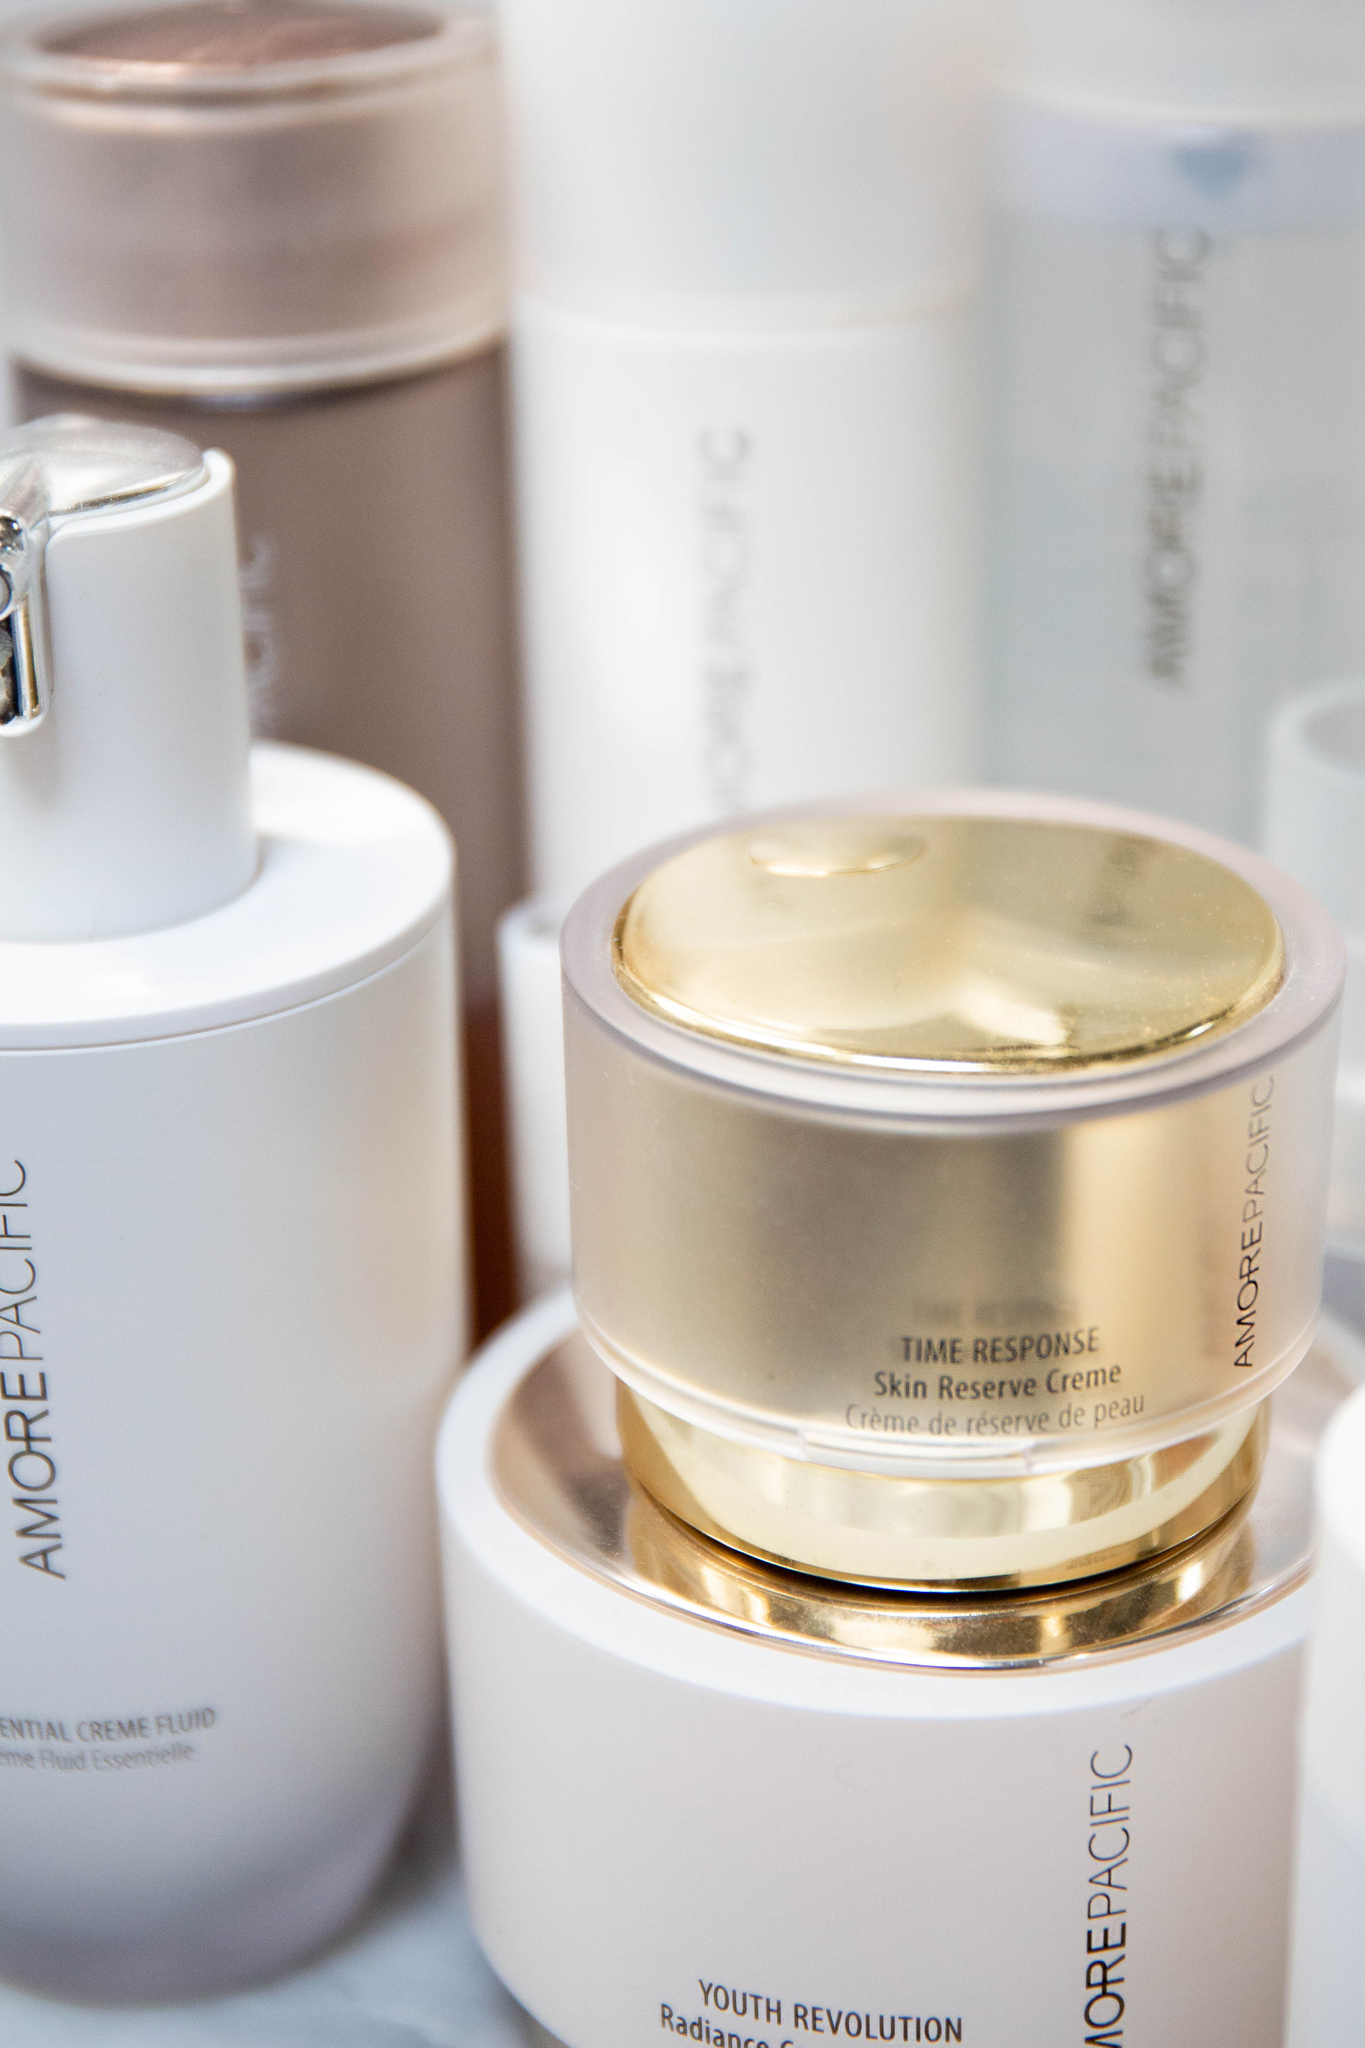 AmorePacific Time Response Skin Reserve Creme